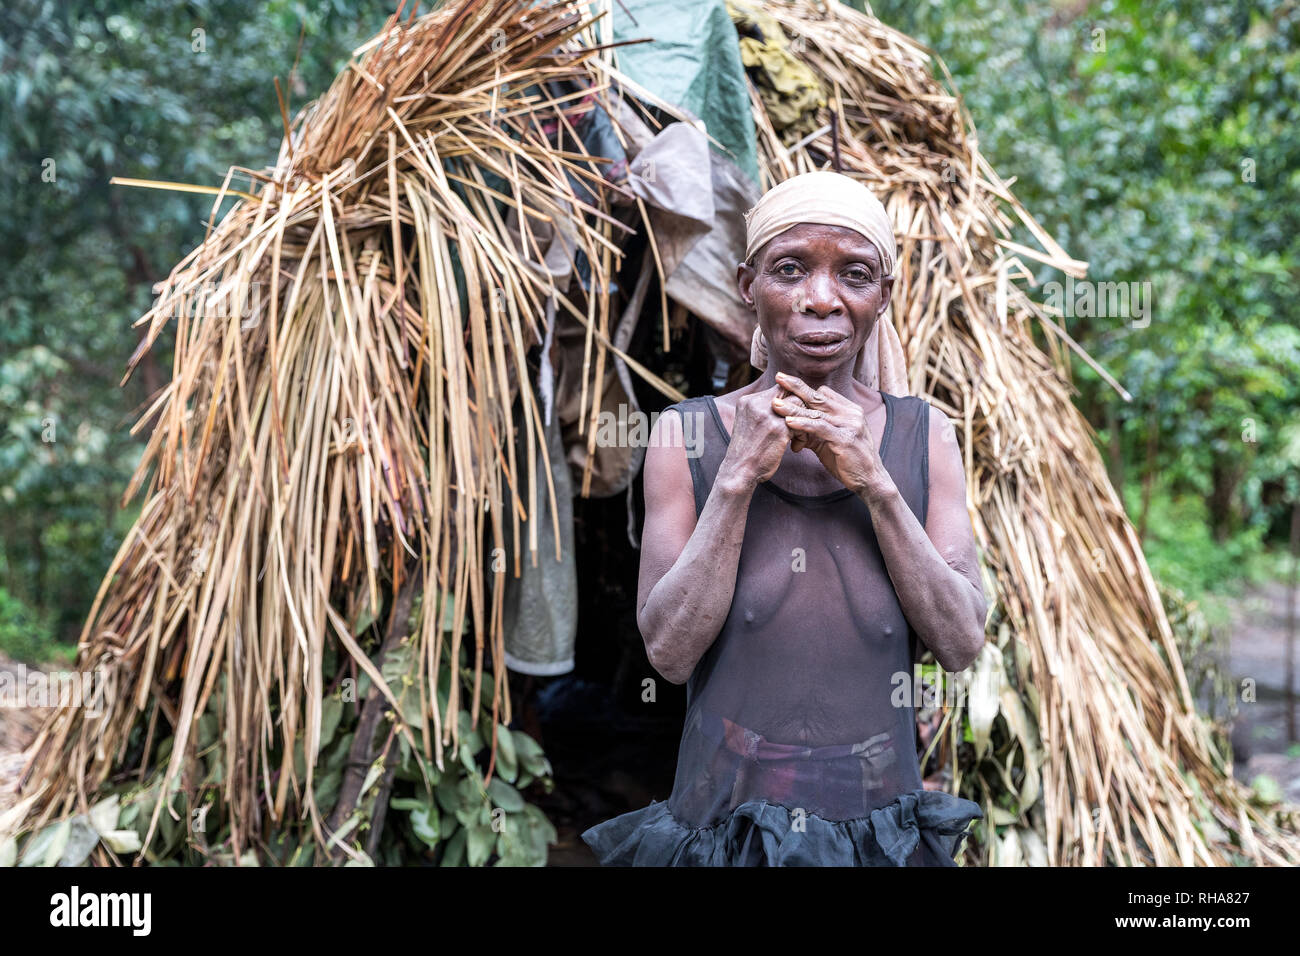 Portrait of pygmy tribeswoman standing in front of primitive hut, Uganda - Stock Image